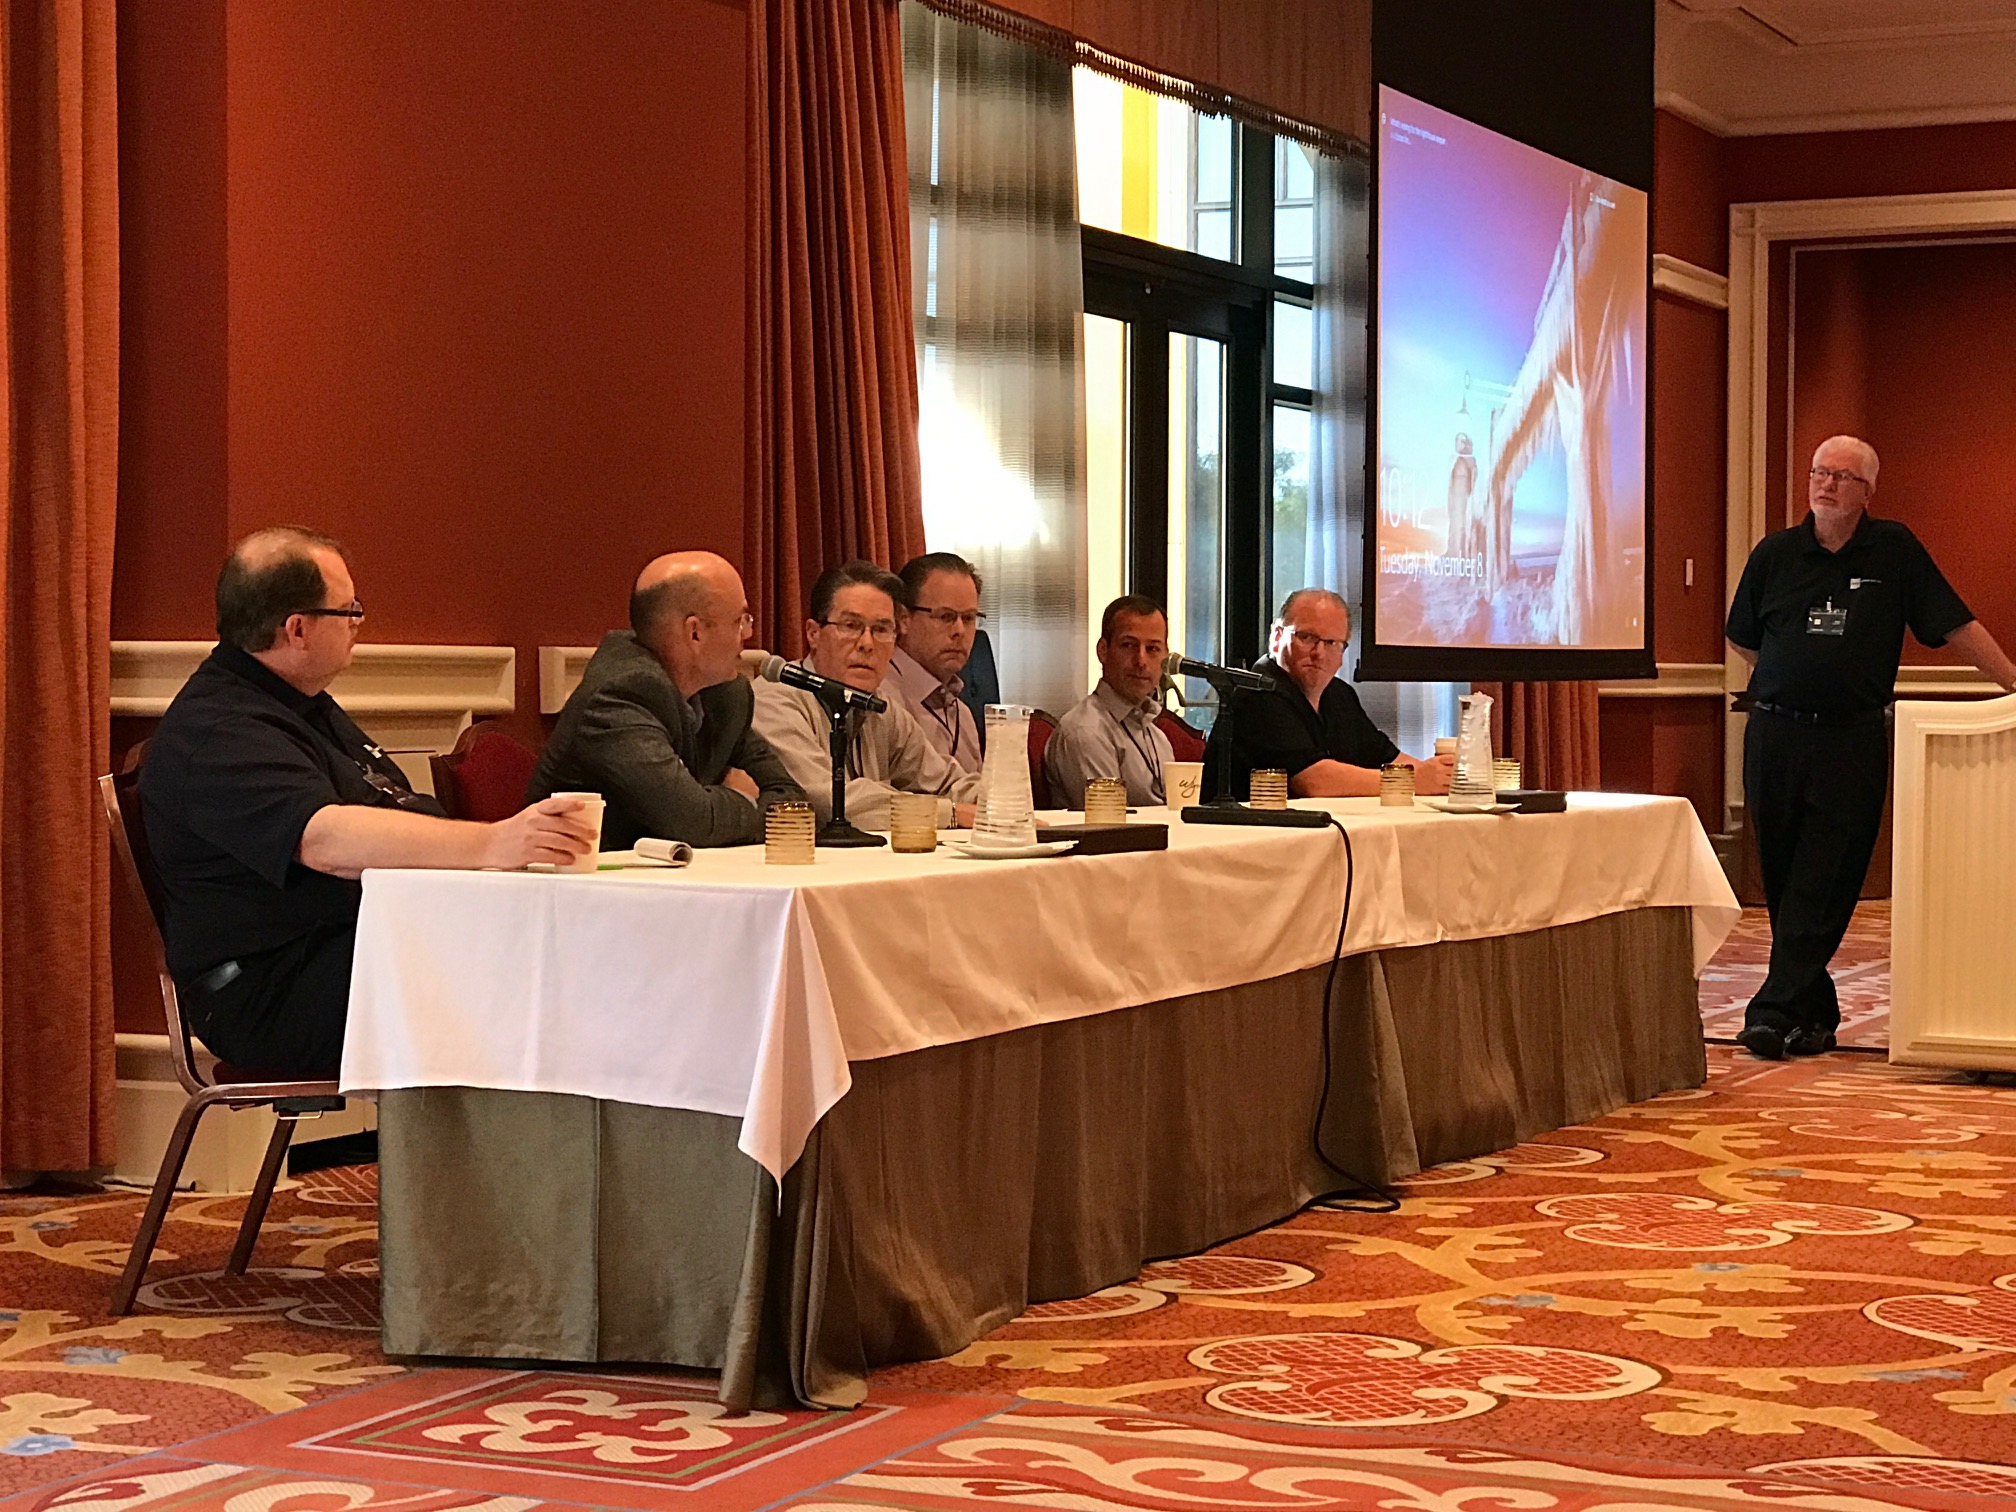 Panel session at Simplify 2016